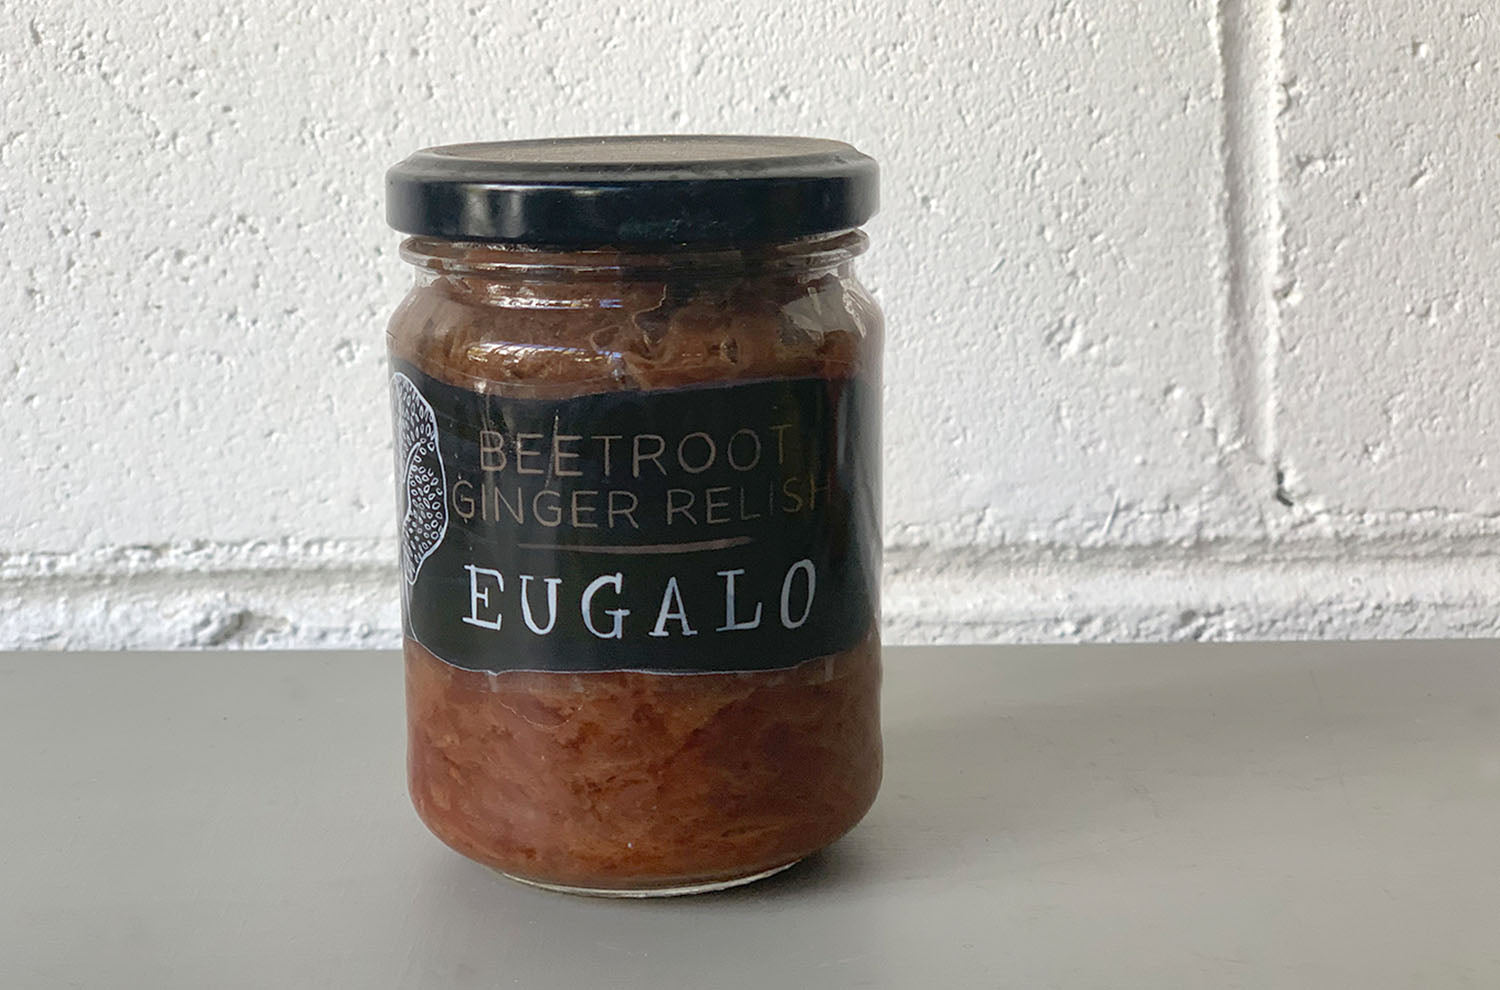 Eugalo Beetroot Ginger Relish